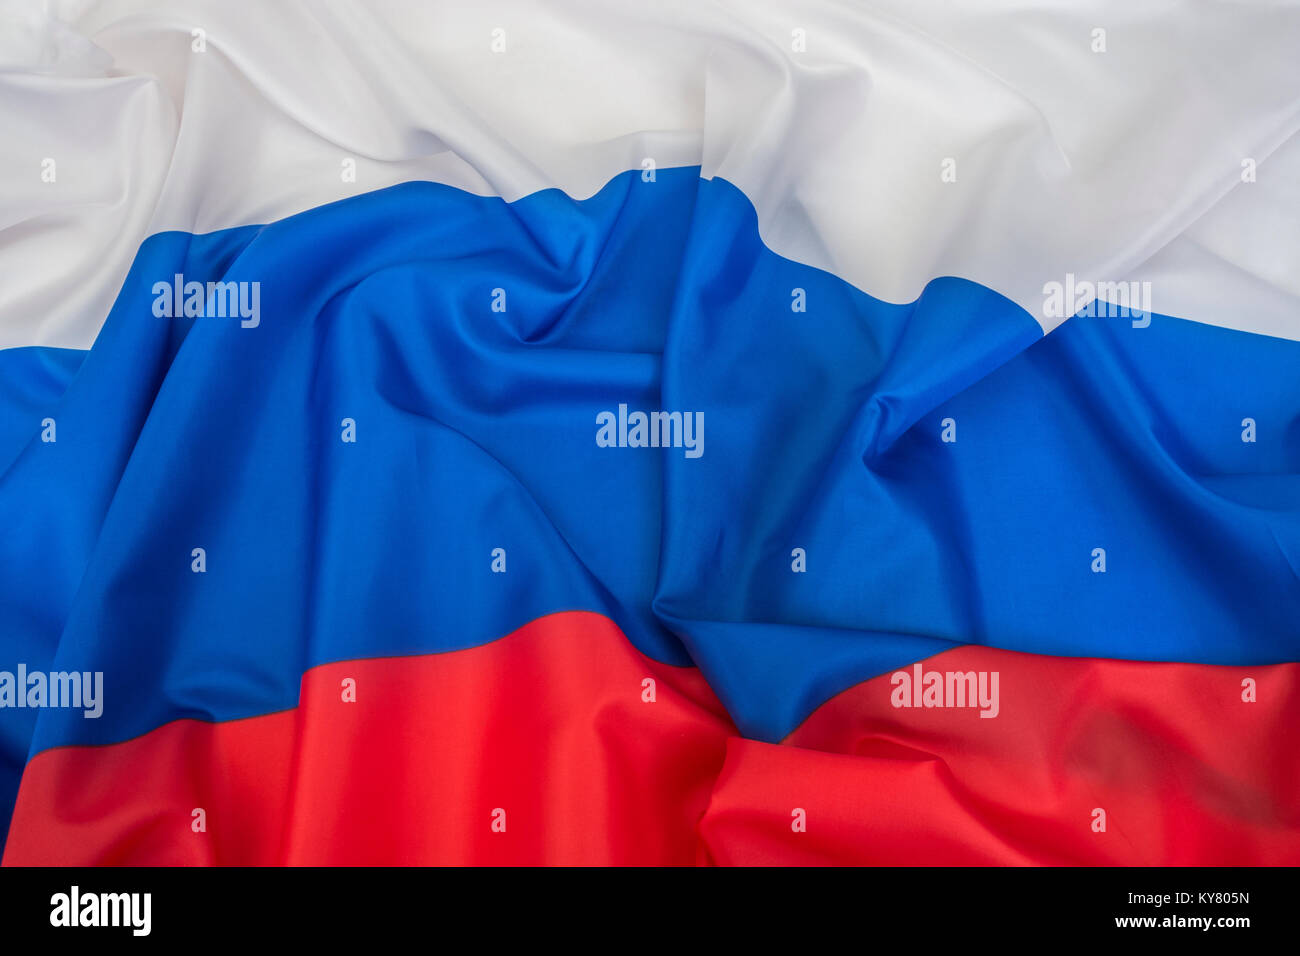 Large Ruffled Russian Federation flag. - Stock Image